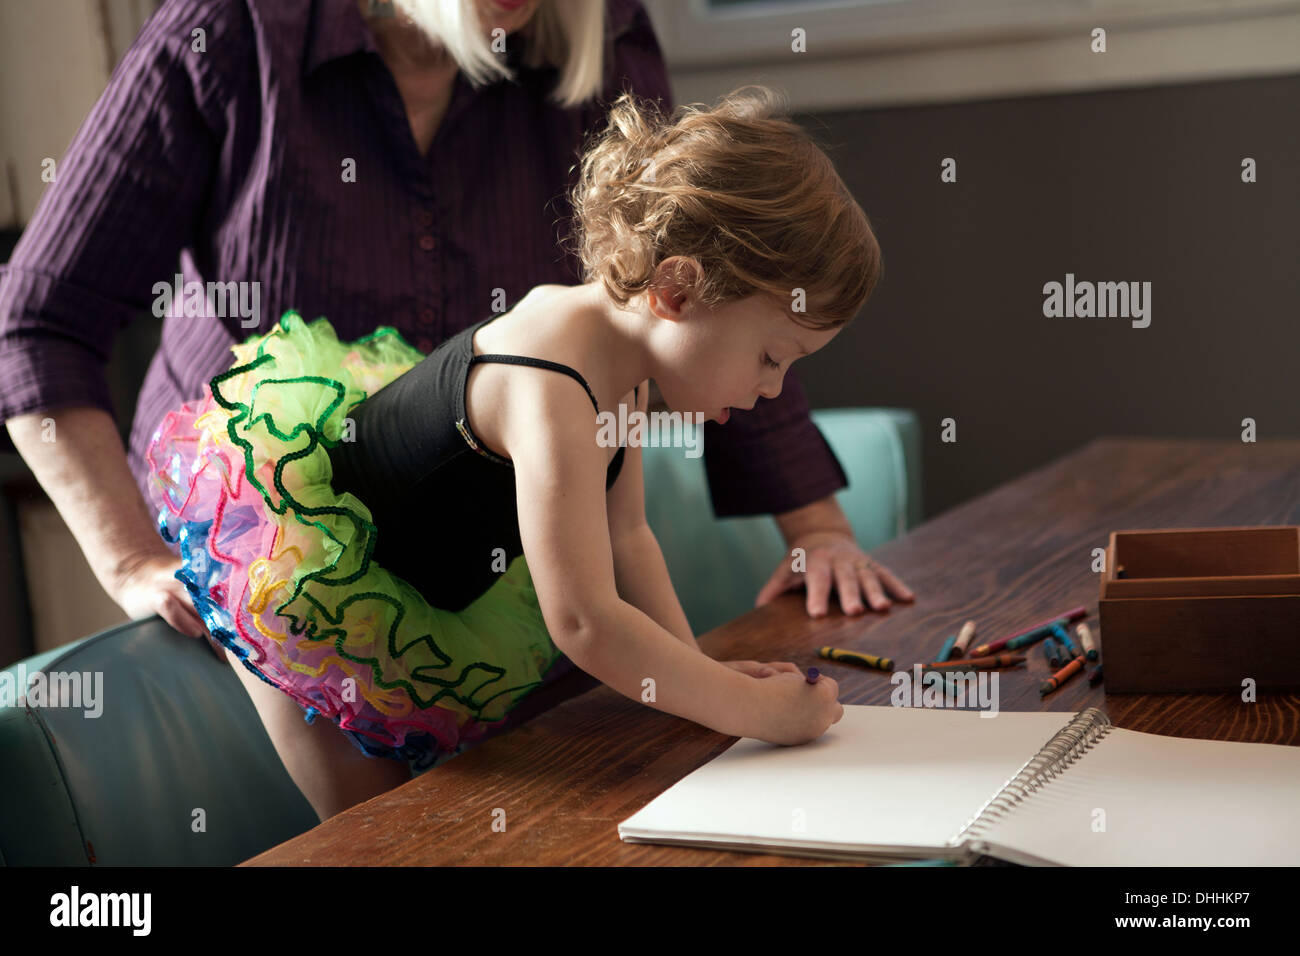 Grandmother and granddaughter standing at table drawing - Stock Image